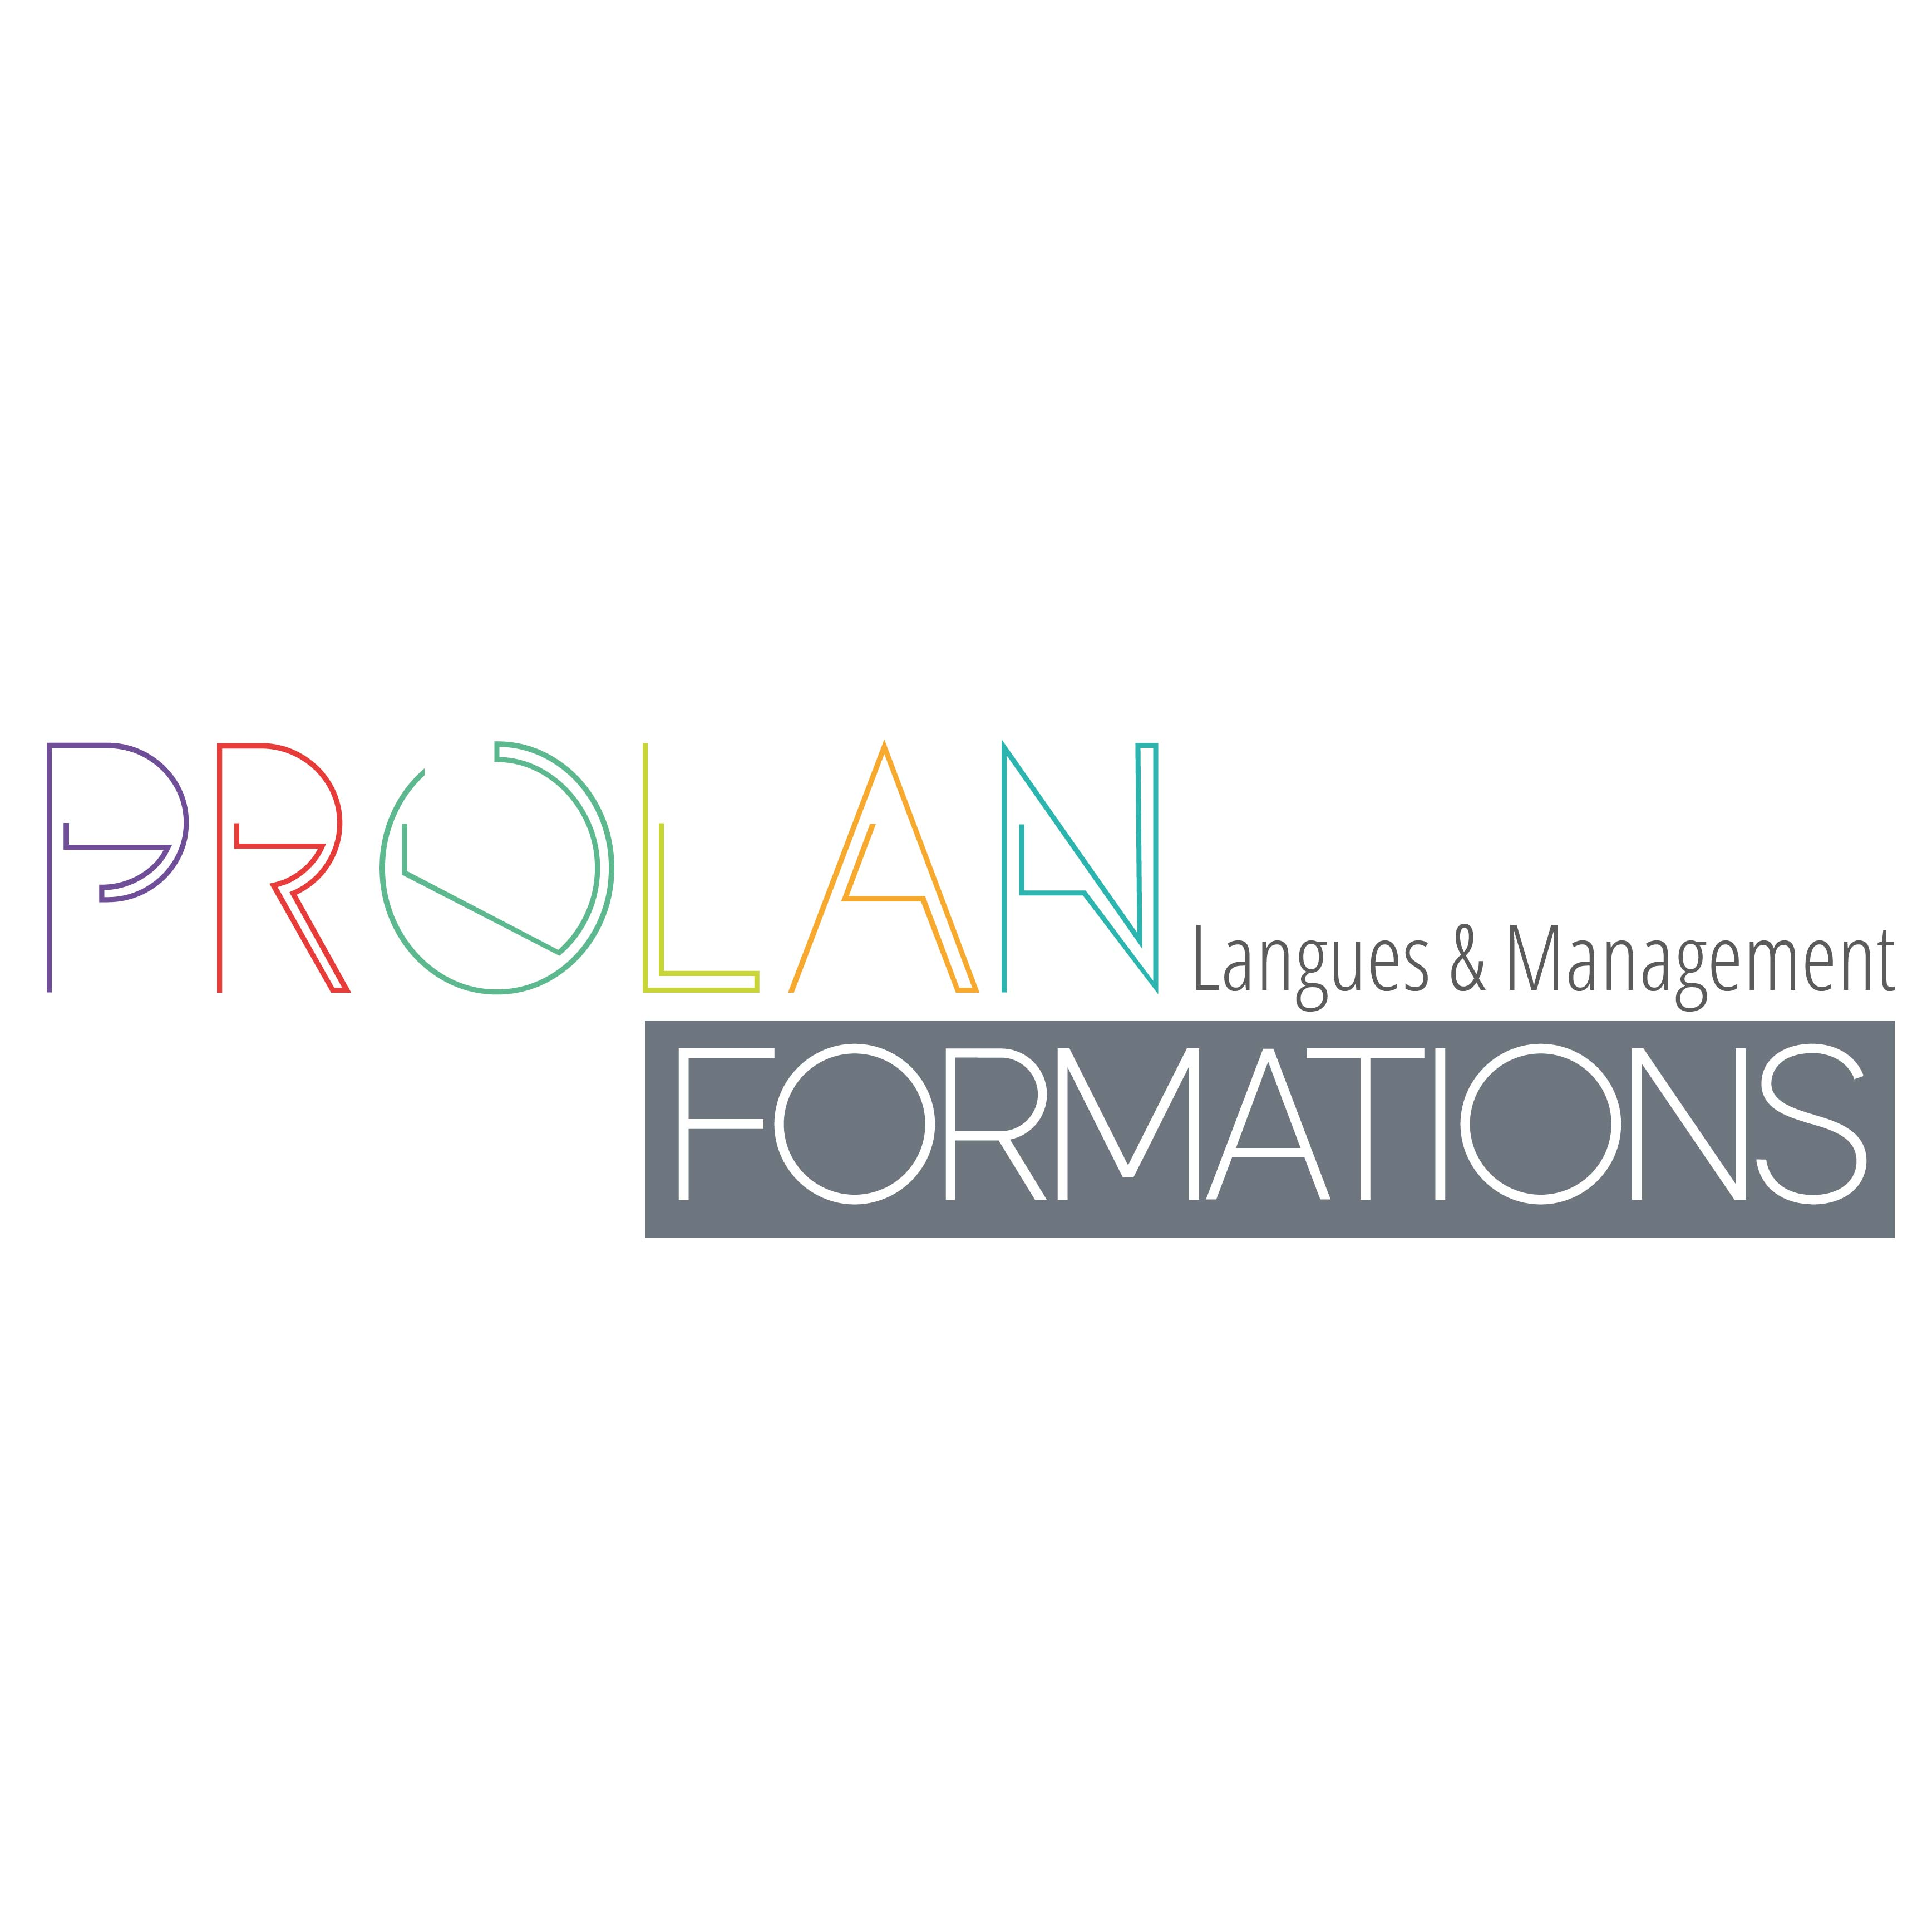 PROLAN FORMATIONS